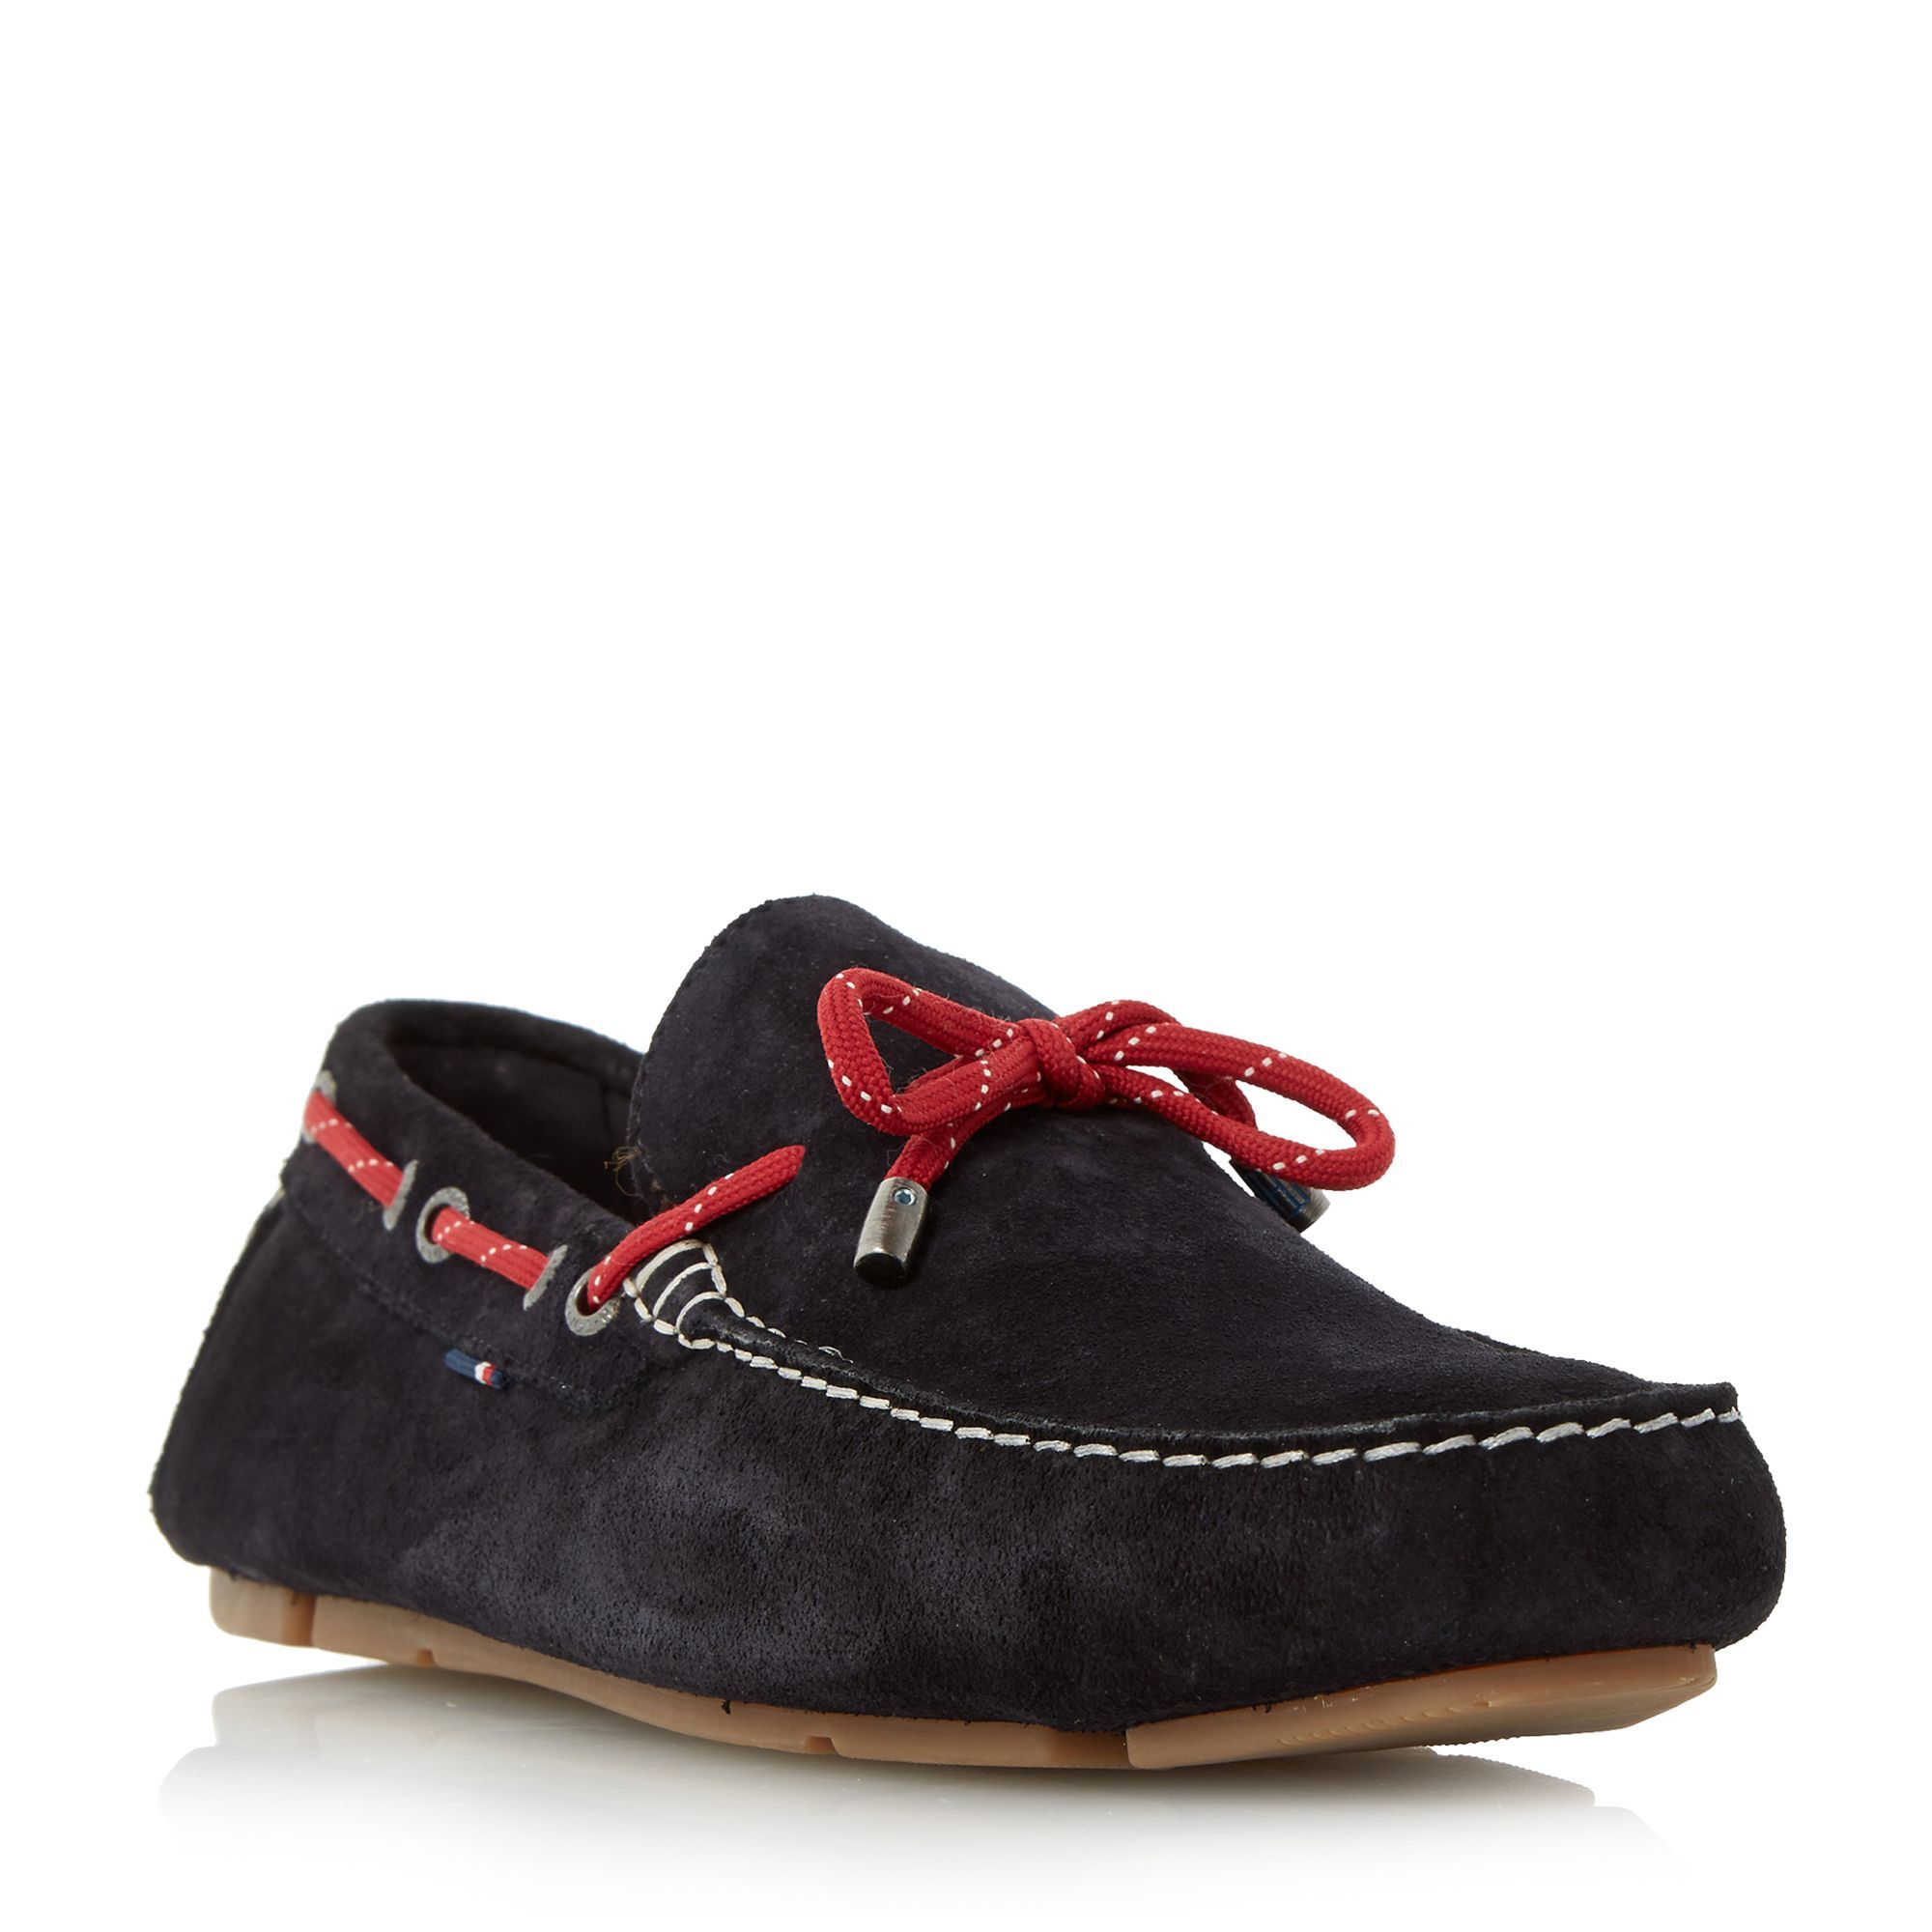 Tommy Hilfiger Monte 3b suede lace up driver loafers, Navy